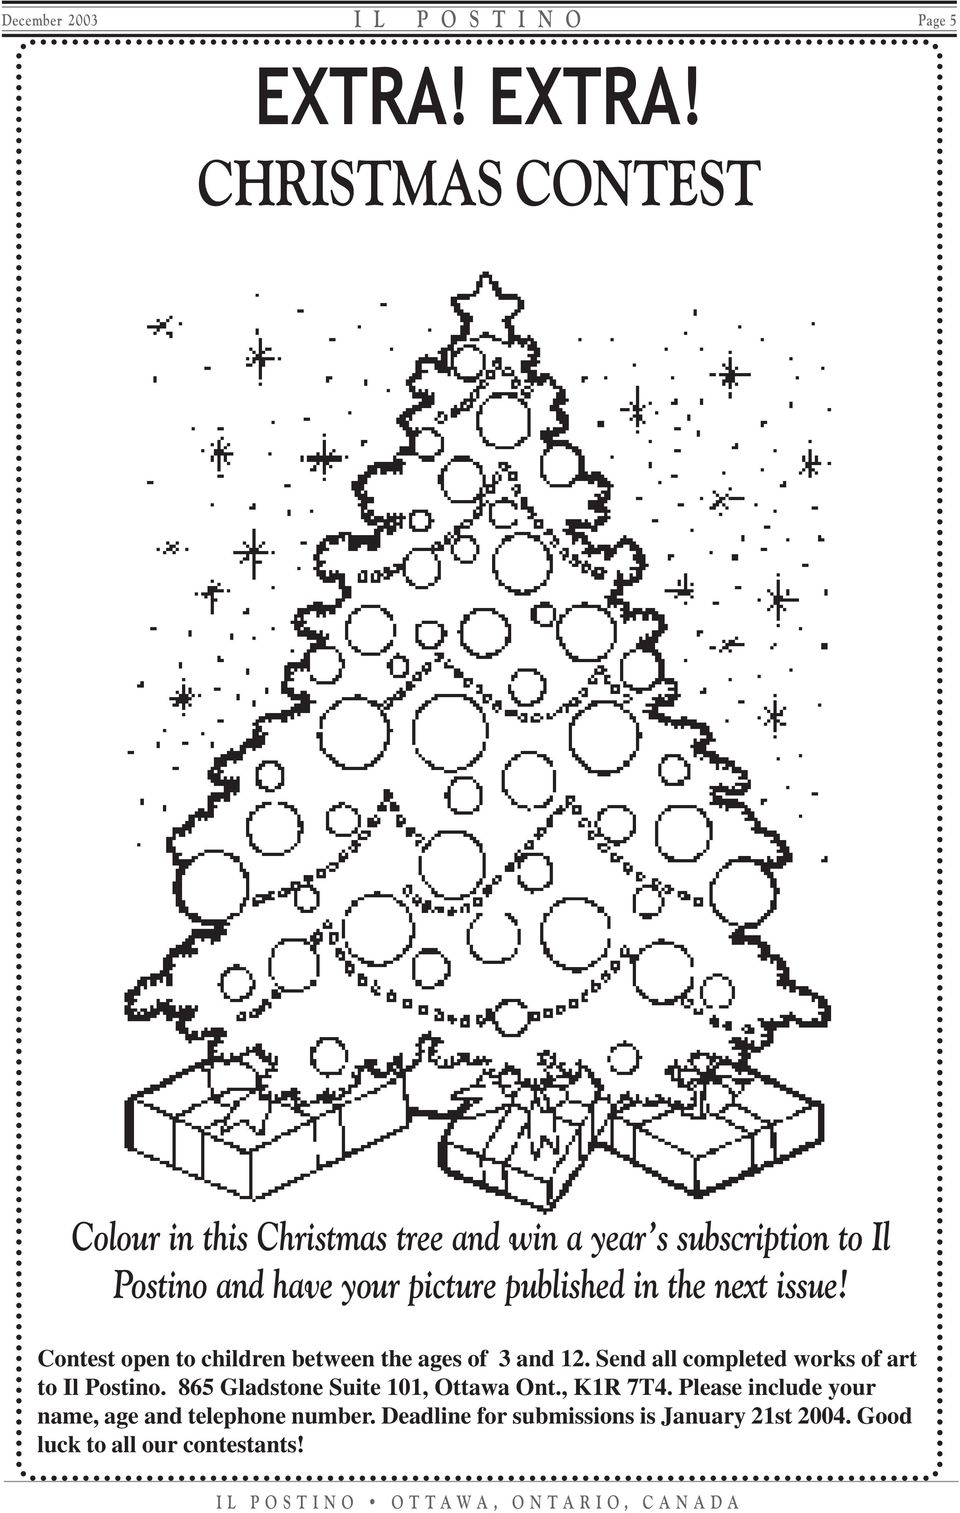 CHRISTMAS CONTEST Colour in this Christmas tree and win a year s subscription to Il Postino and have your picture